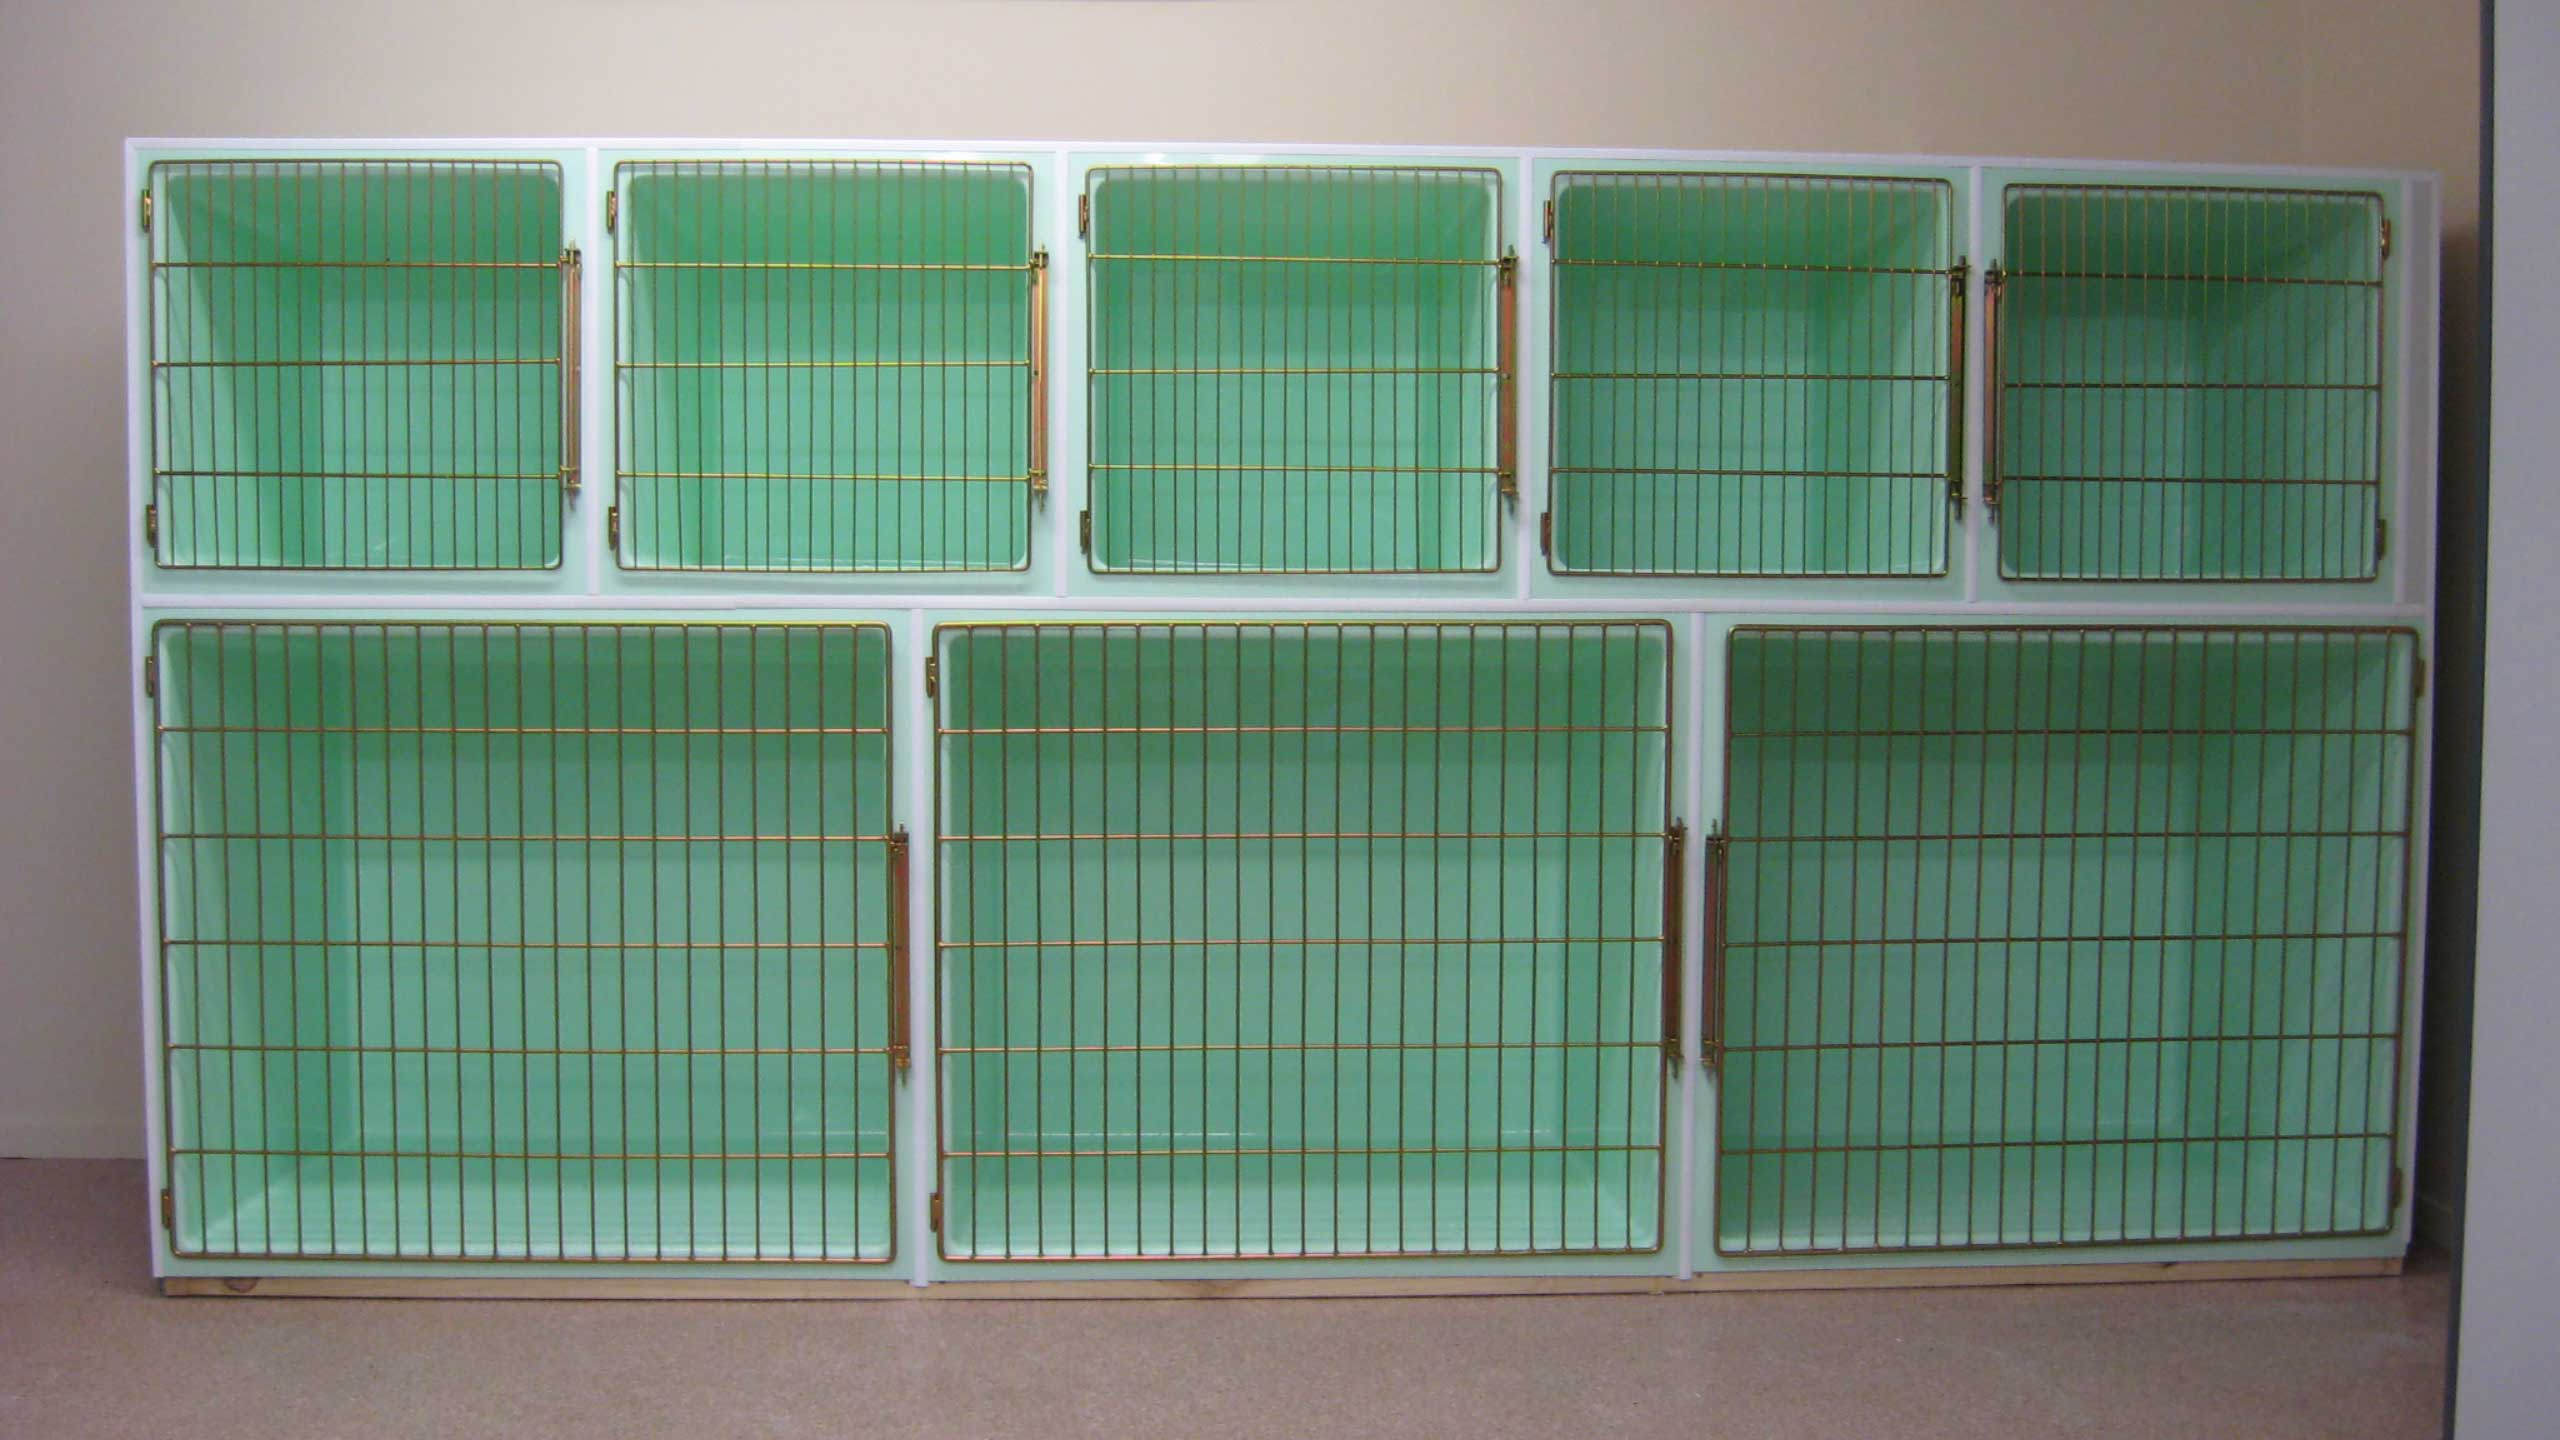 Creature Comfort Cages cage bank: 5 x Cat Cages (top), 3 x Large Dog Cages (bottom)